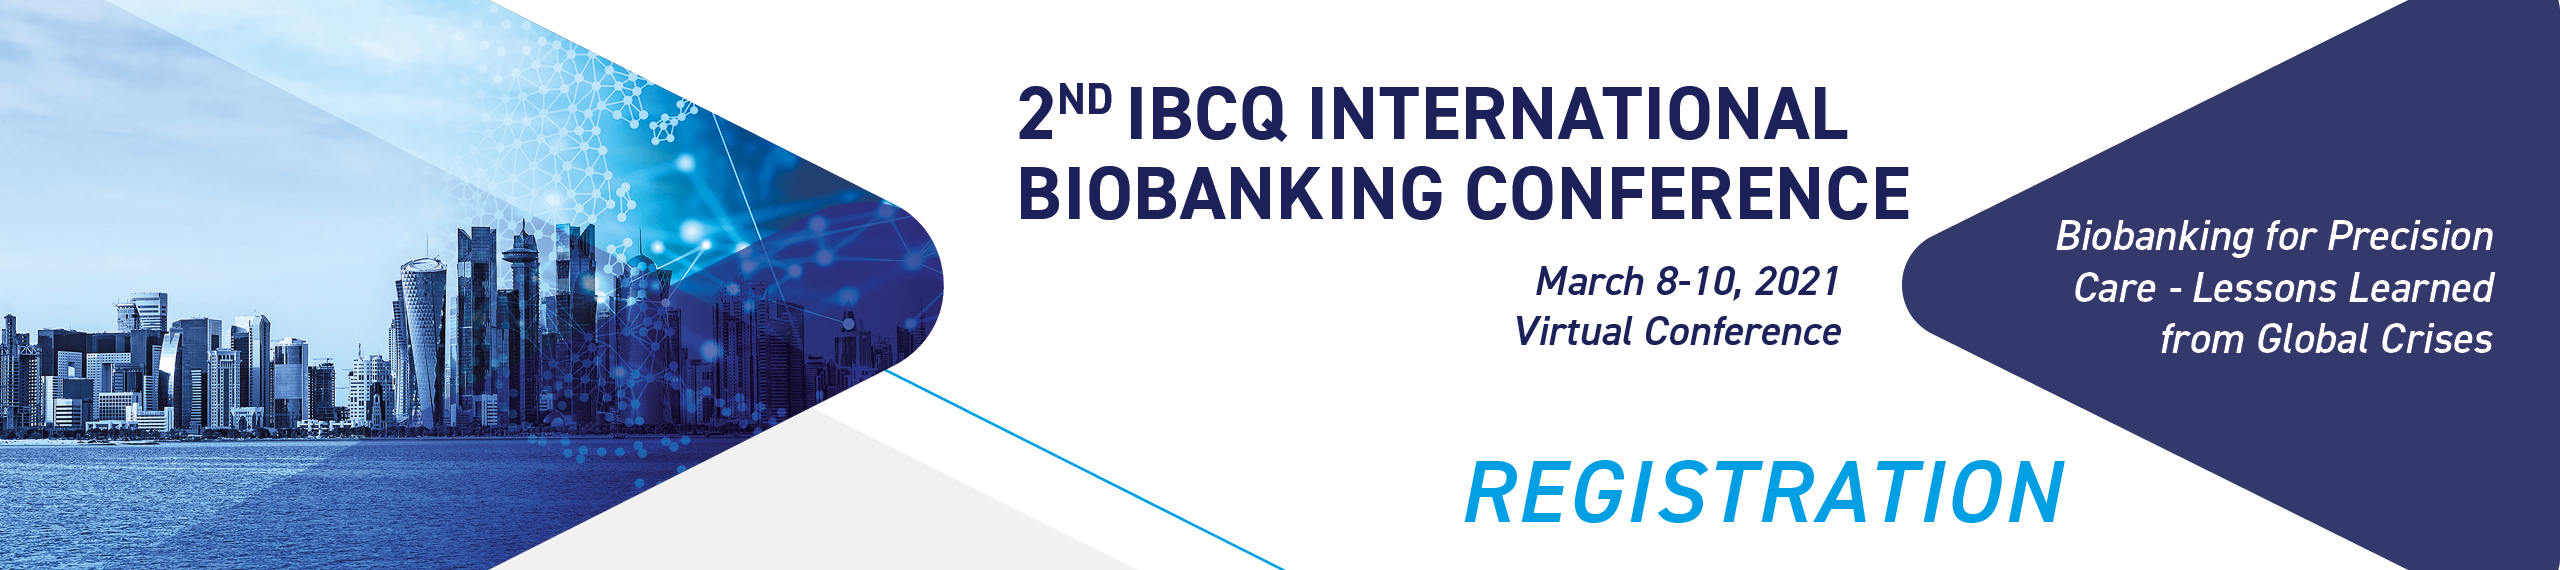 2nd IBCQ International Biobanking Conference